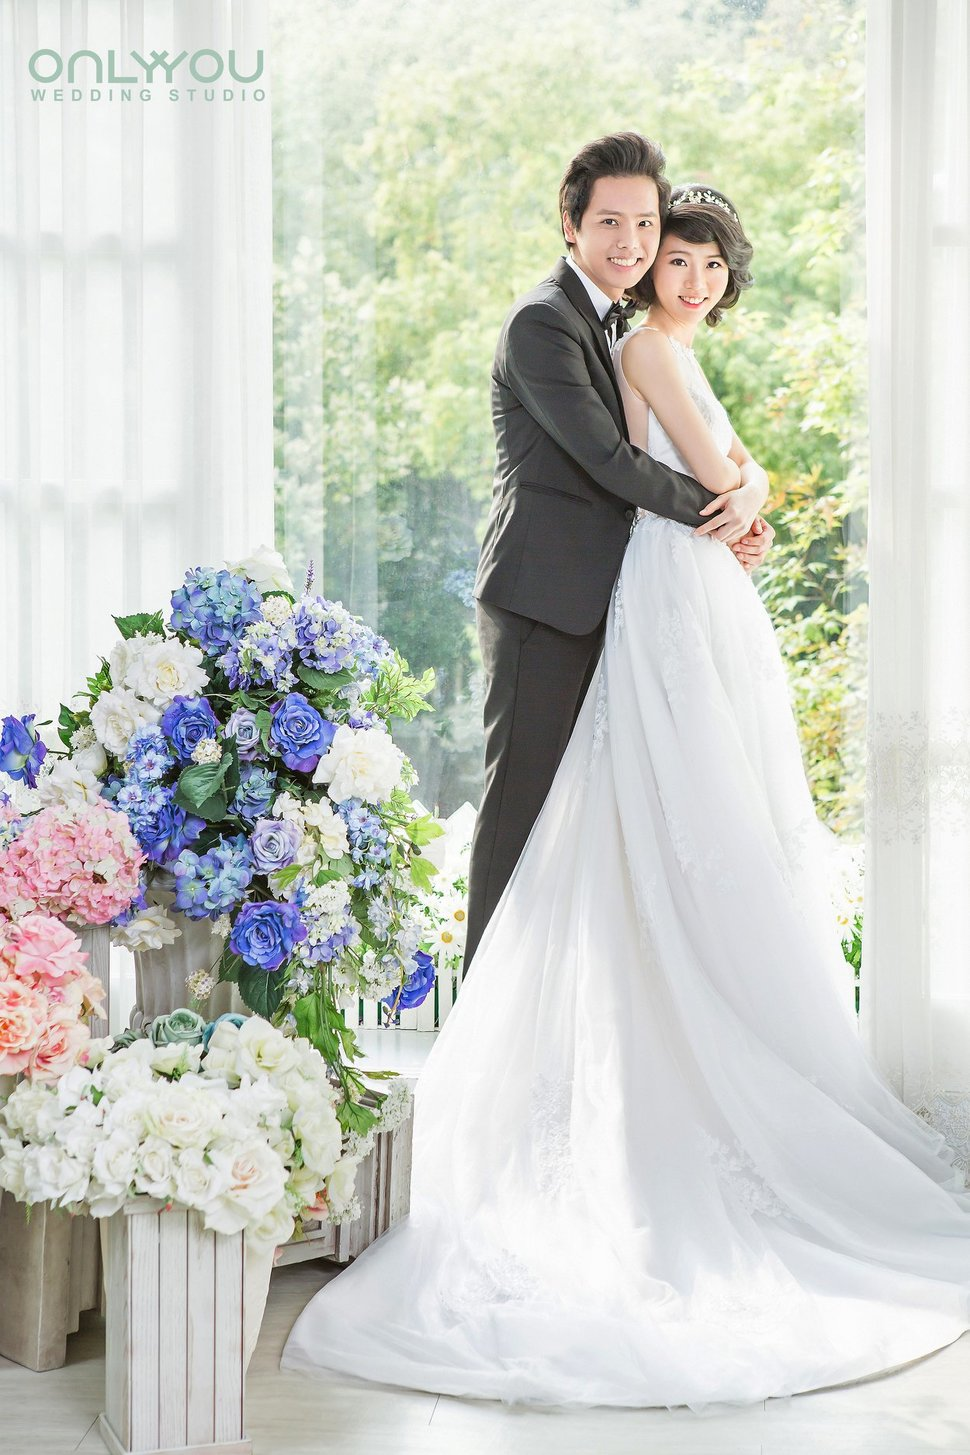 67395379_2290992564289710_2262667558412877824_o - ONLY YOU 唯你婚紗攝影《結婚吧》